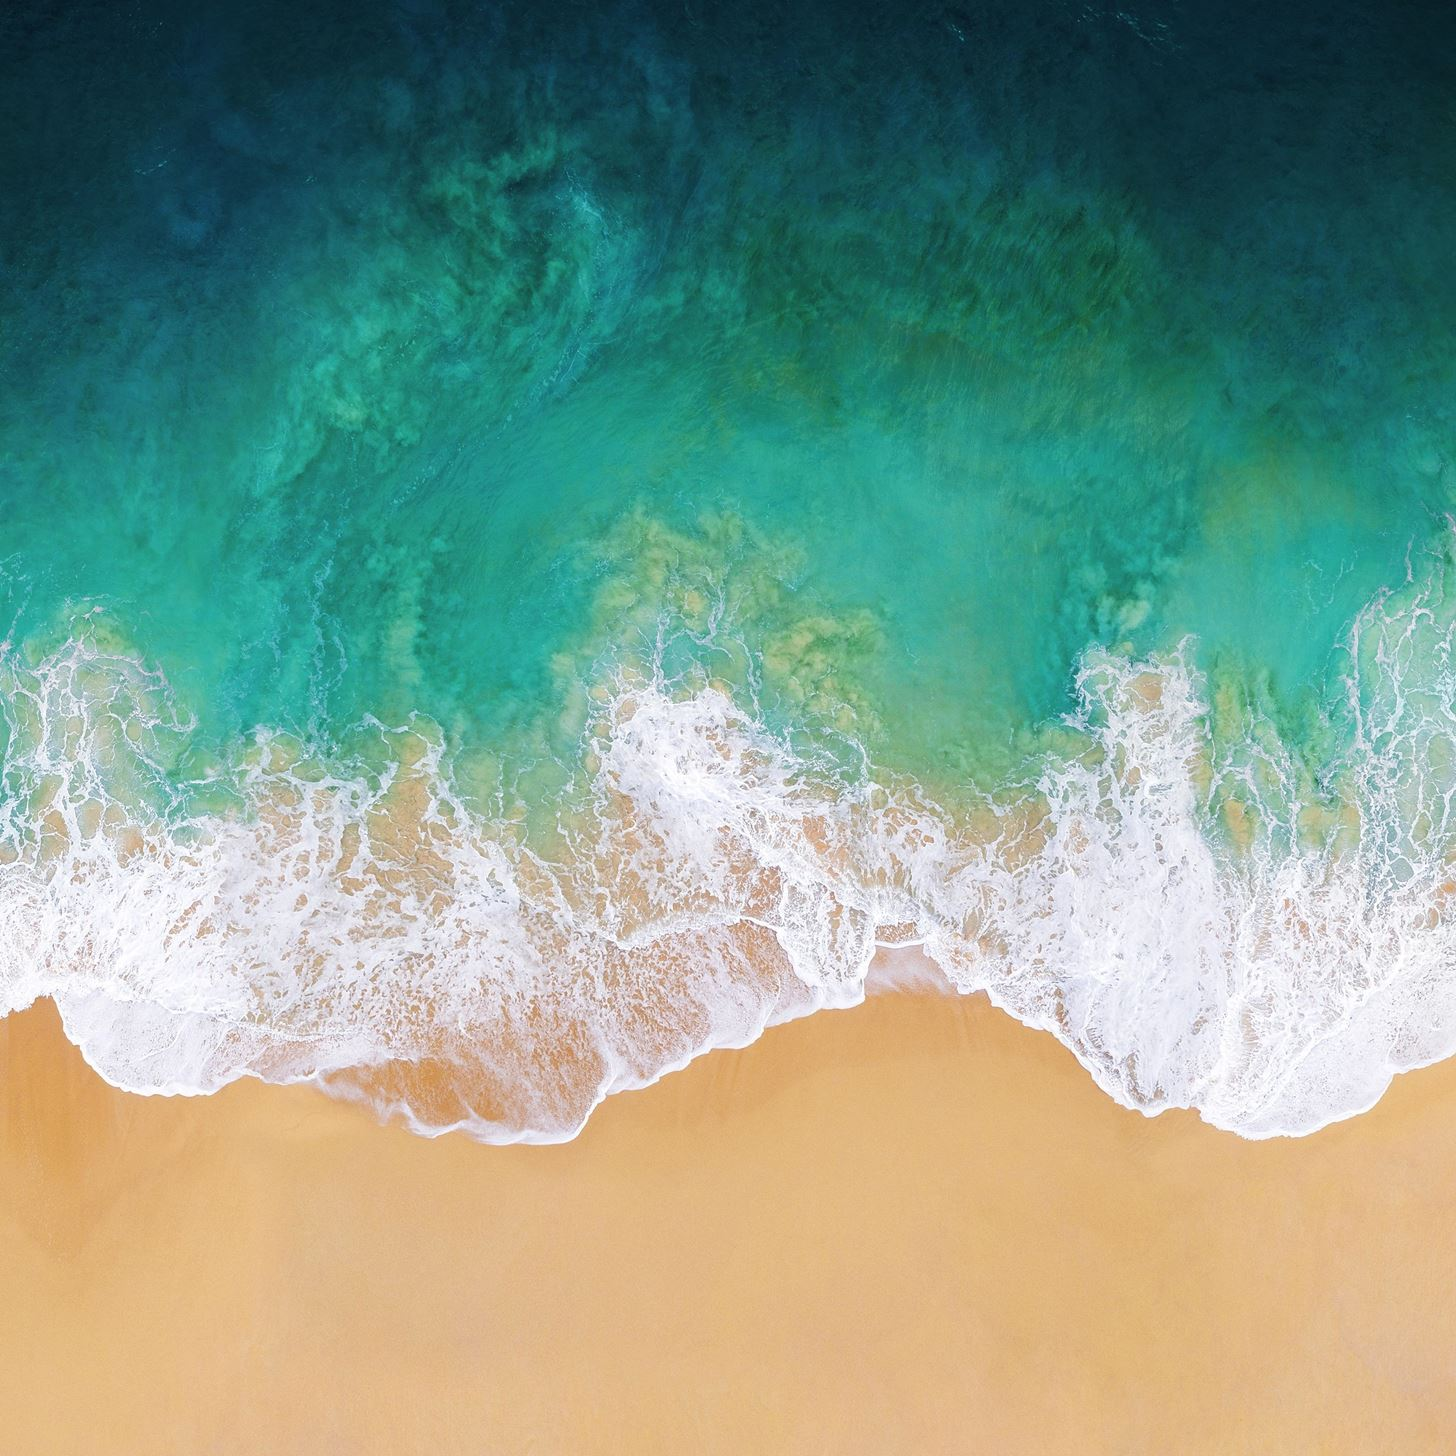 Get iOS 11's New Wallpapers on Any Phone